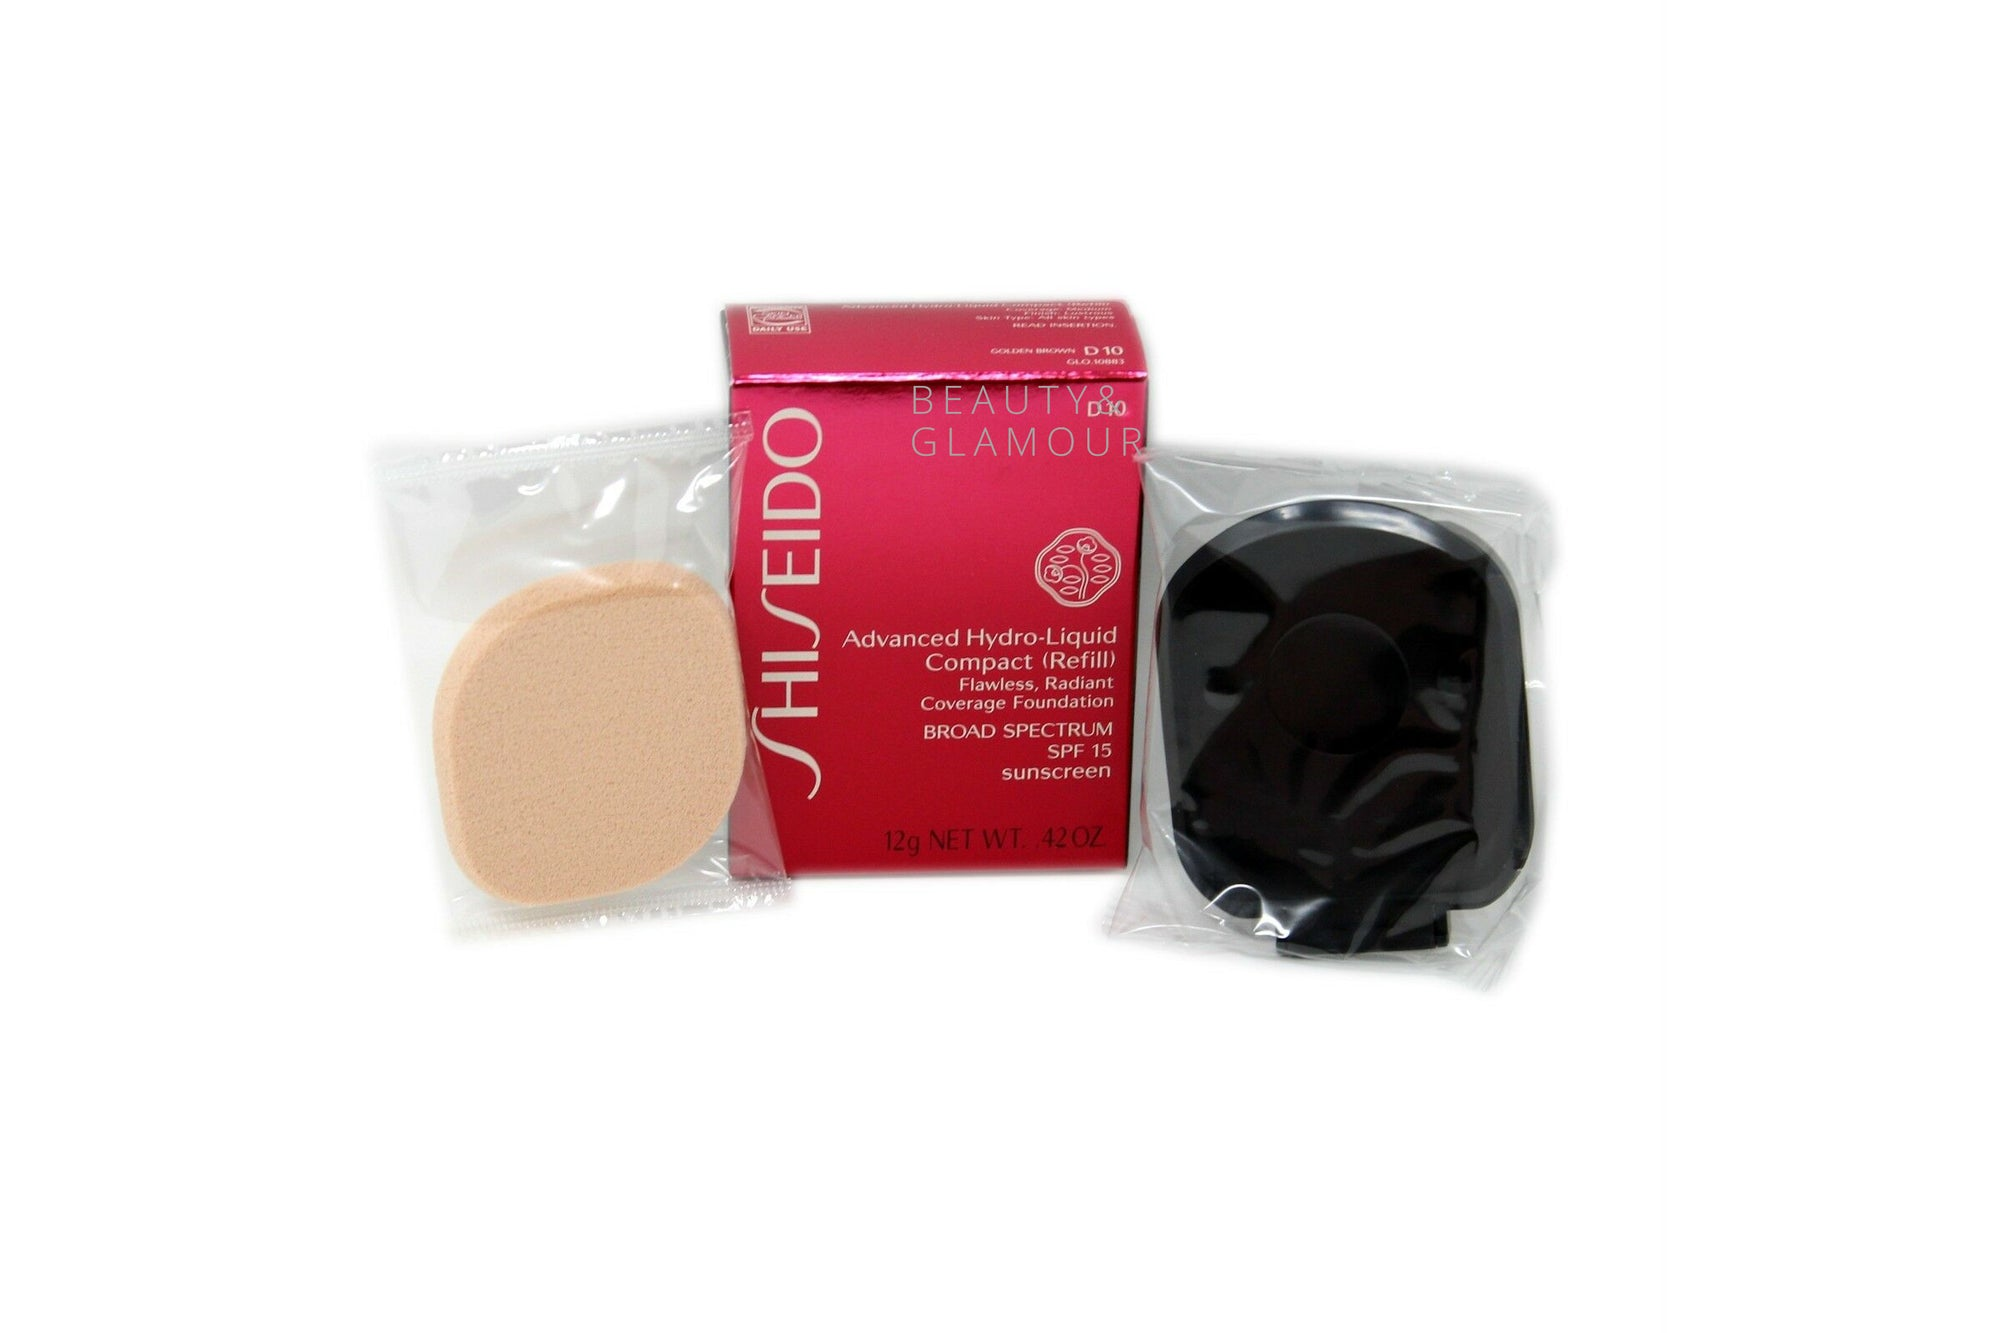 SHISEIDO ADVANCED HYDRO-LIQUID COMPACT (REFILL) SPF-15 SUNSCREEN